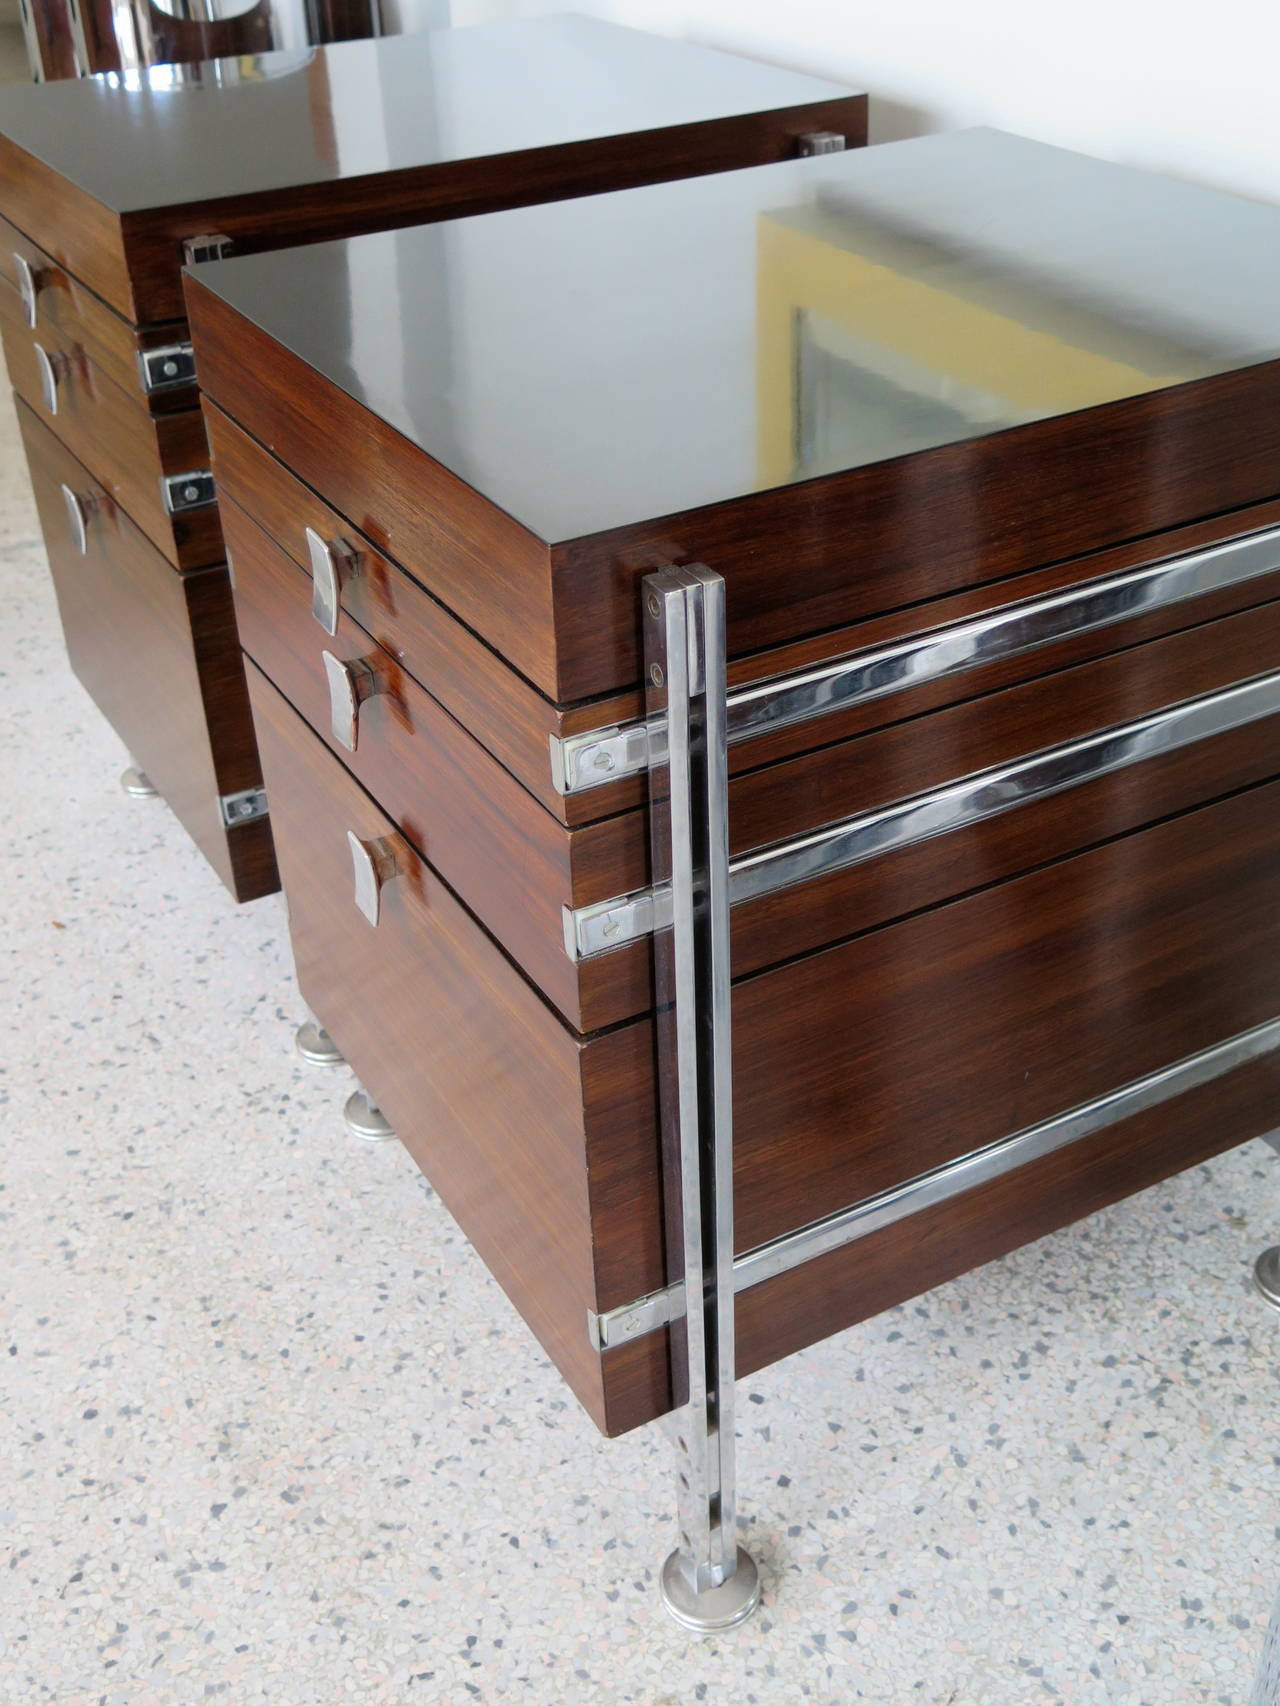 A pair of rosewood and chrome-plated steel cabinets by Jules Wabbes, Belgium, circa 1960s.